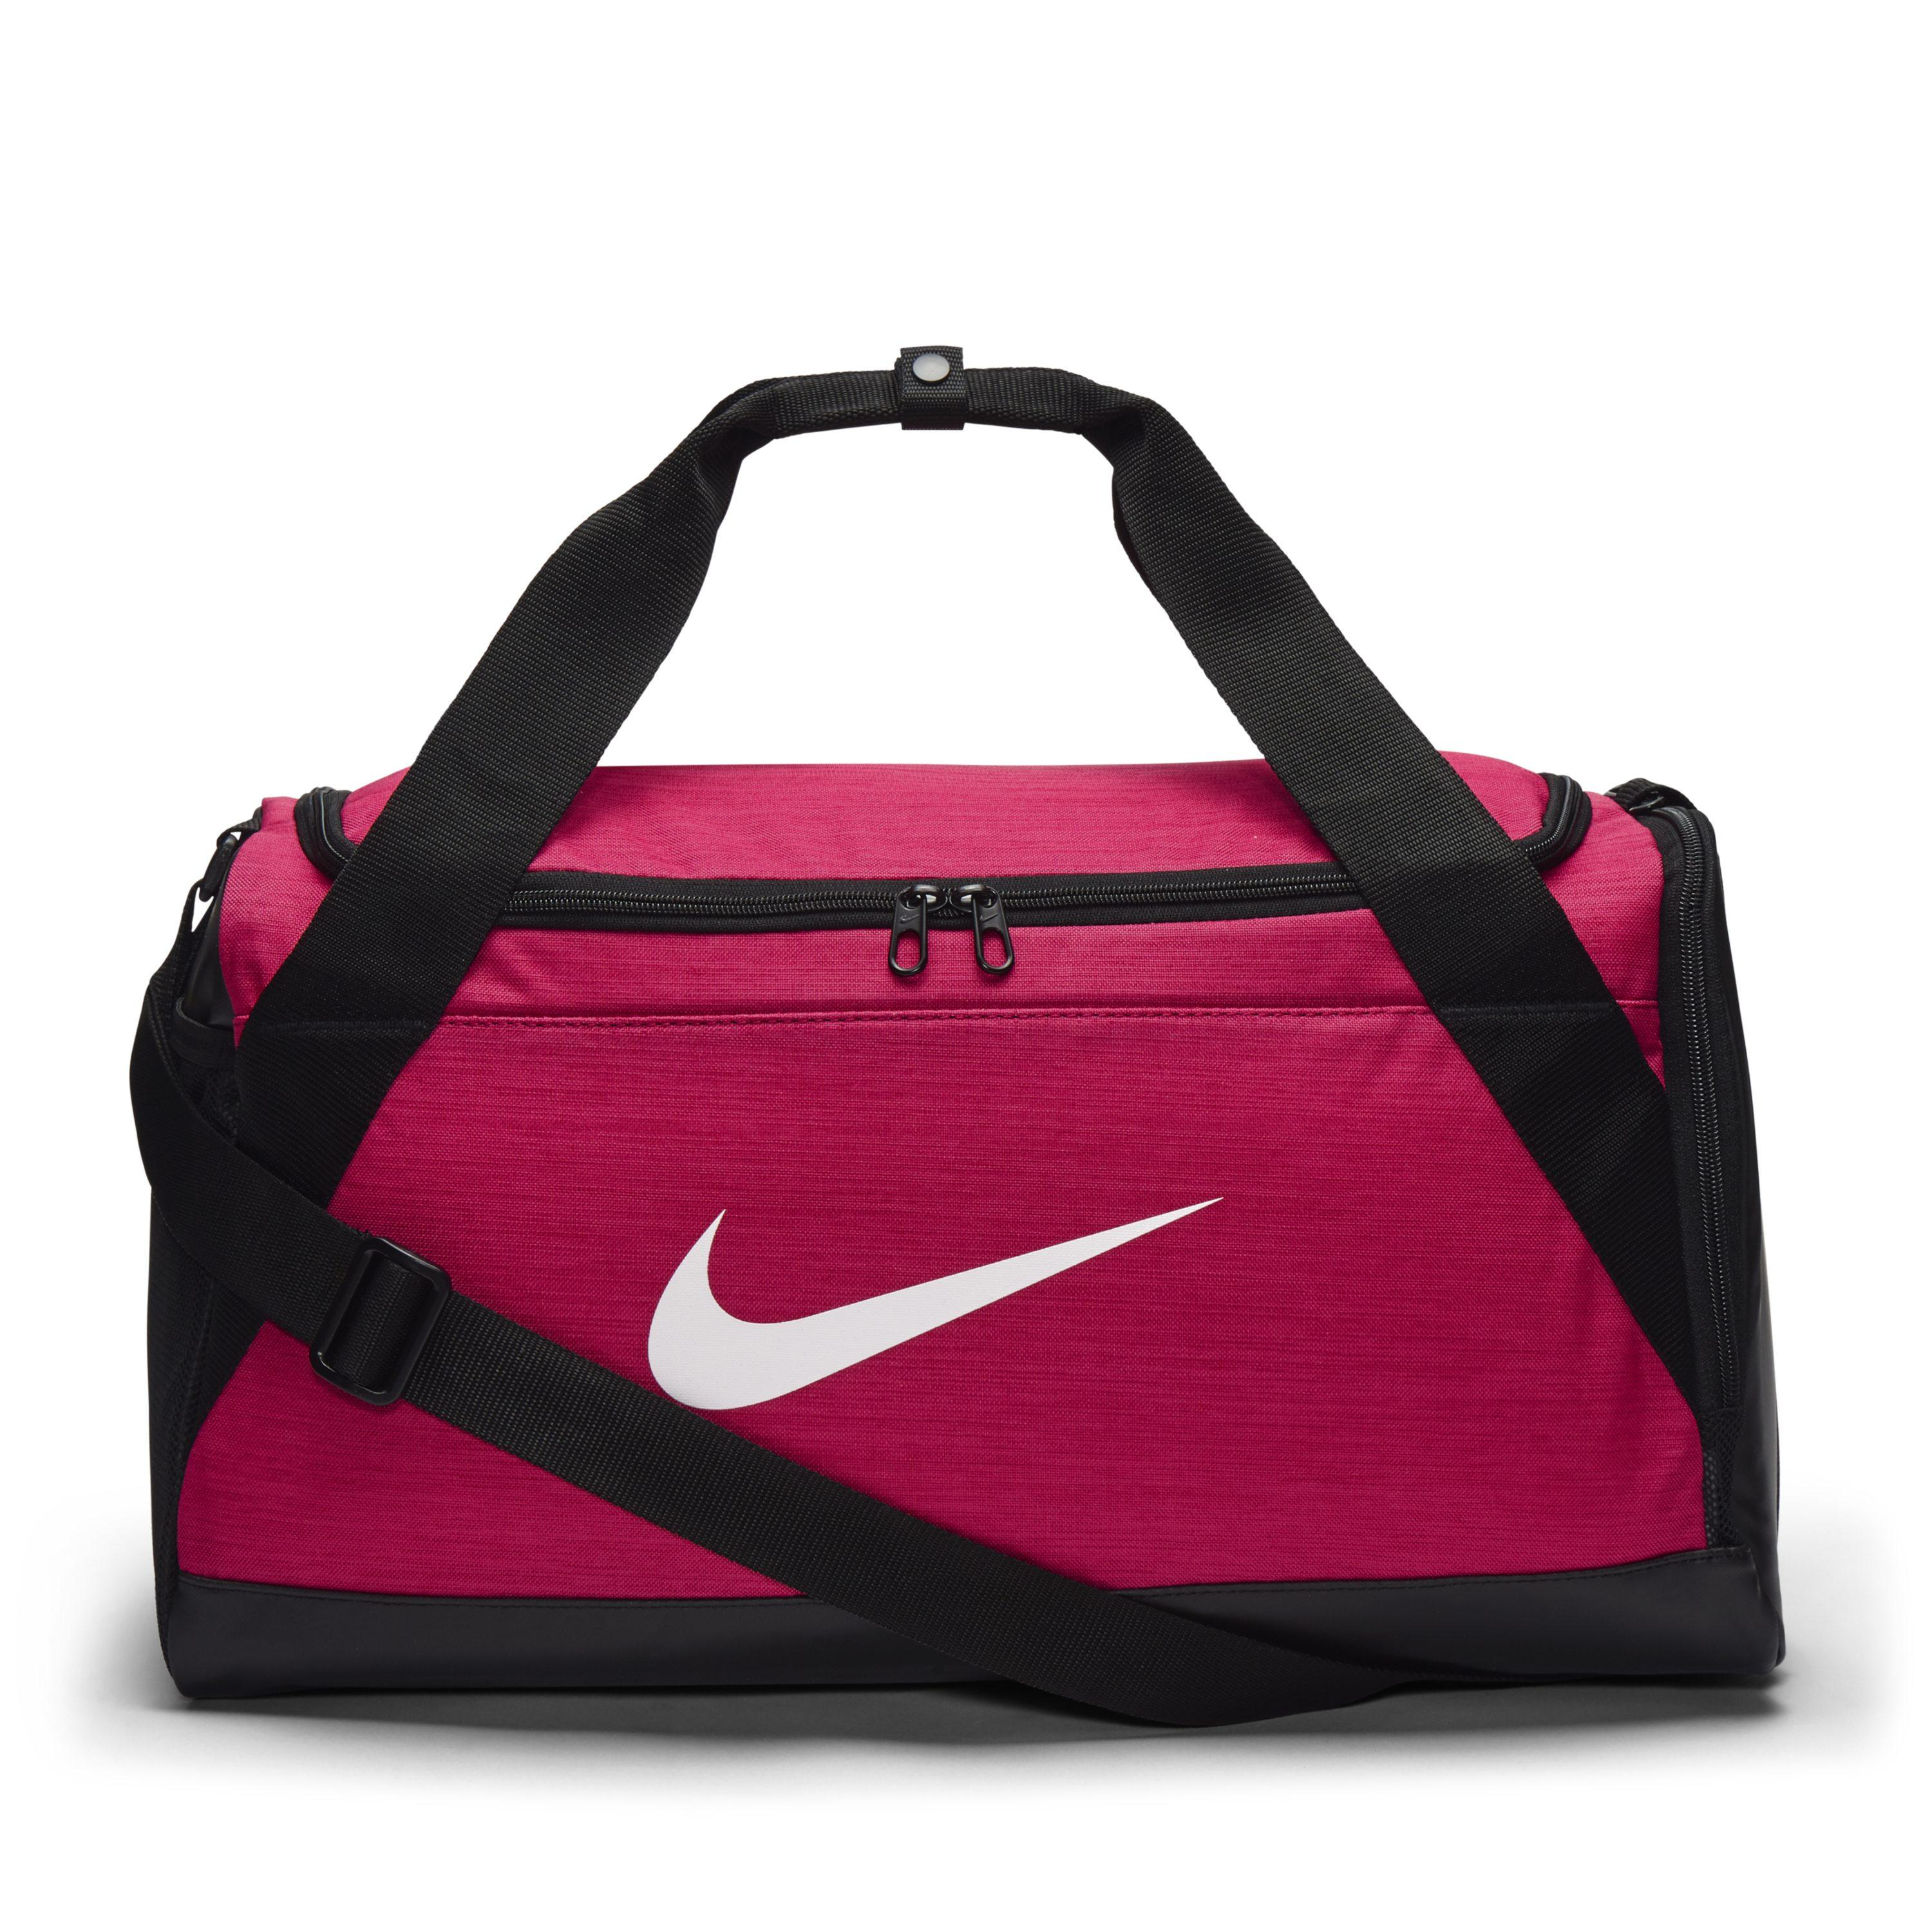 13a826d8545 Nike Brasilia (small) Training Duffel Bag in Pink - Save 28% - Lyst